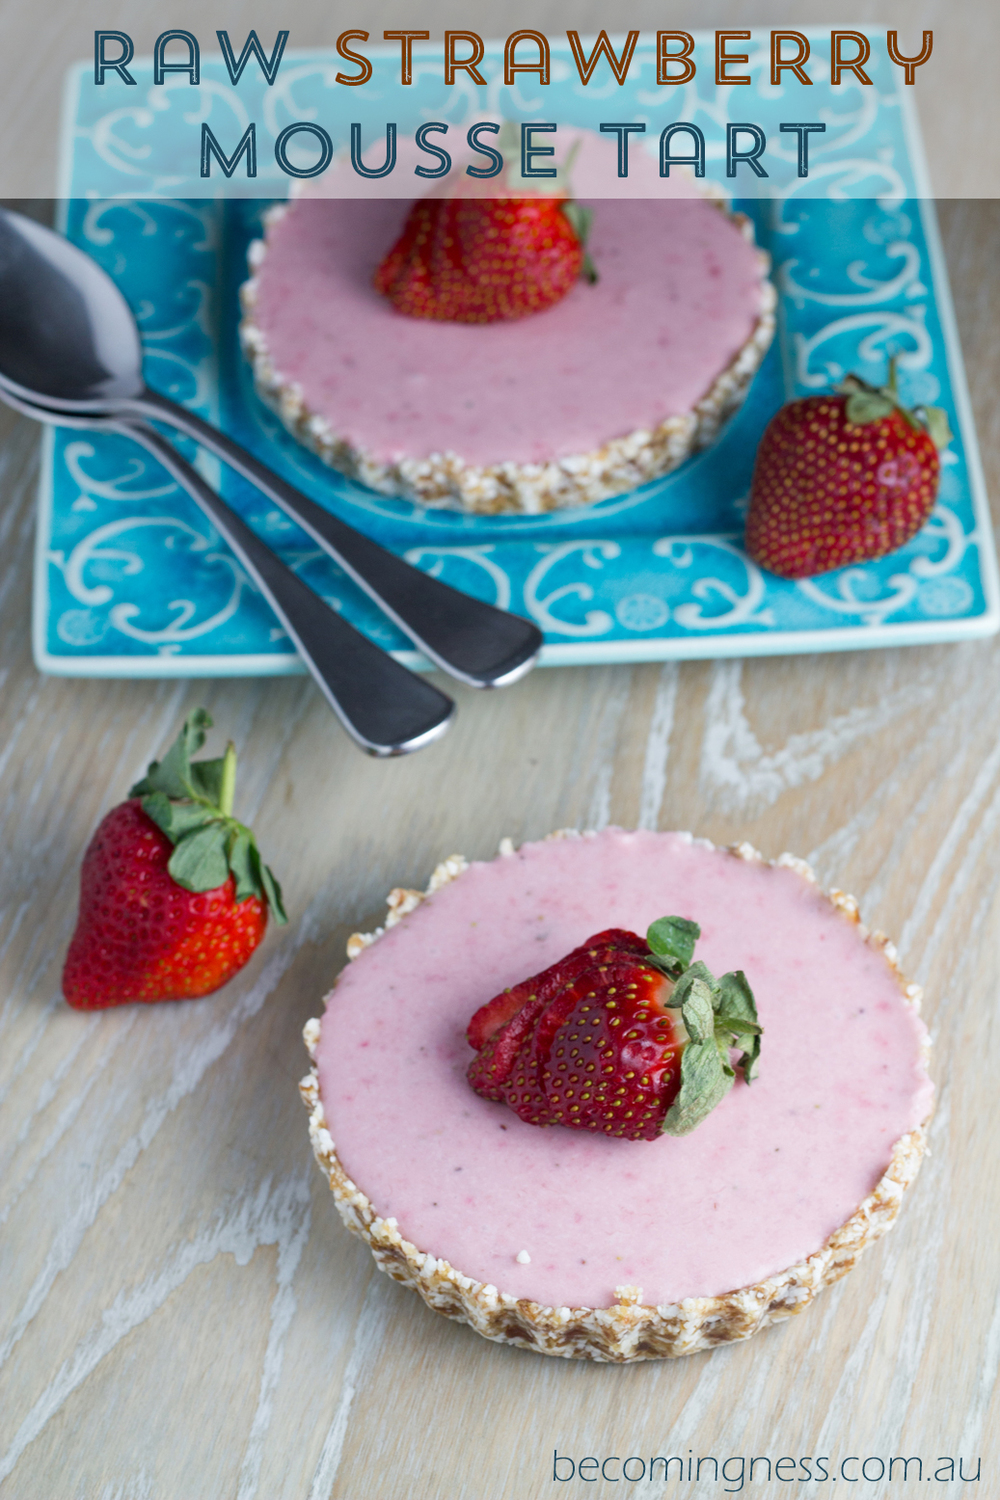 Raw-Strawberry-Mousse-Tart